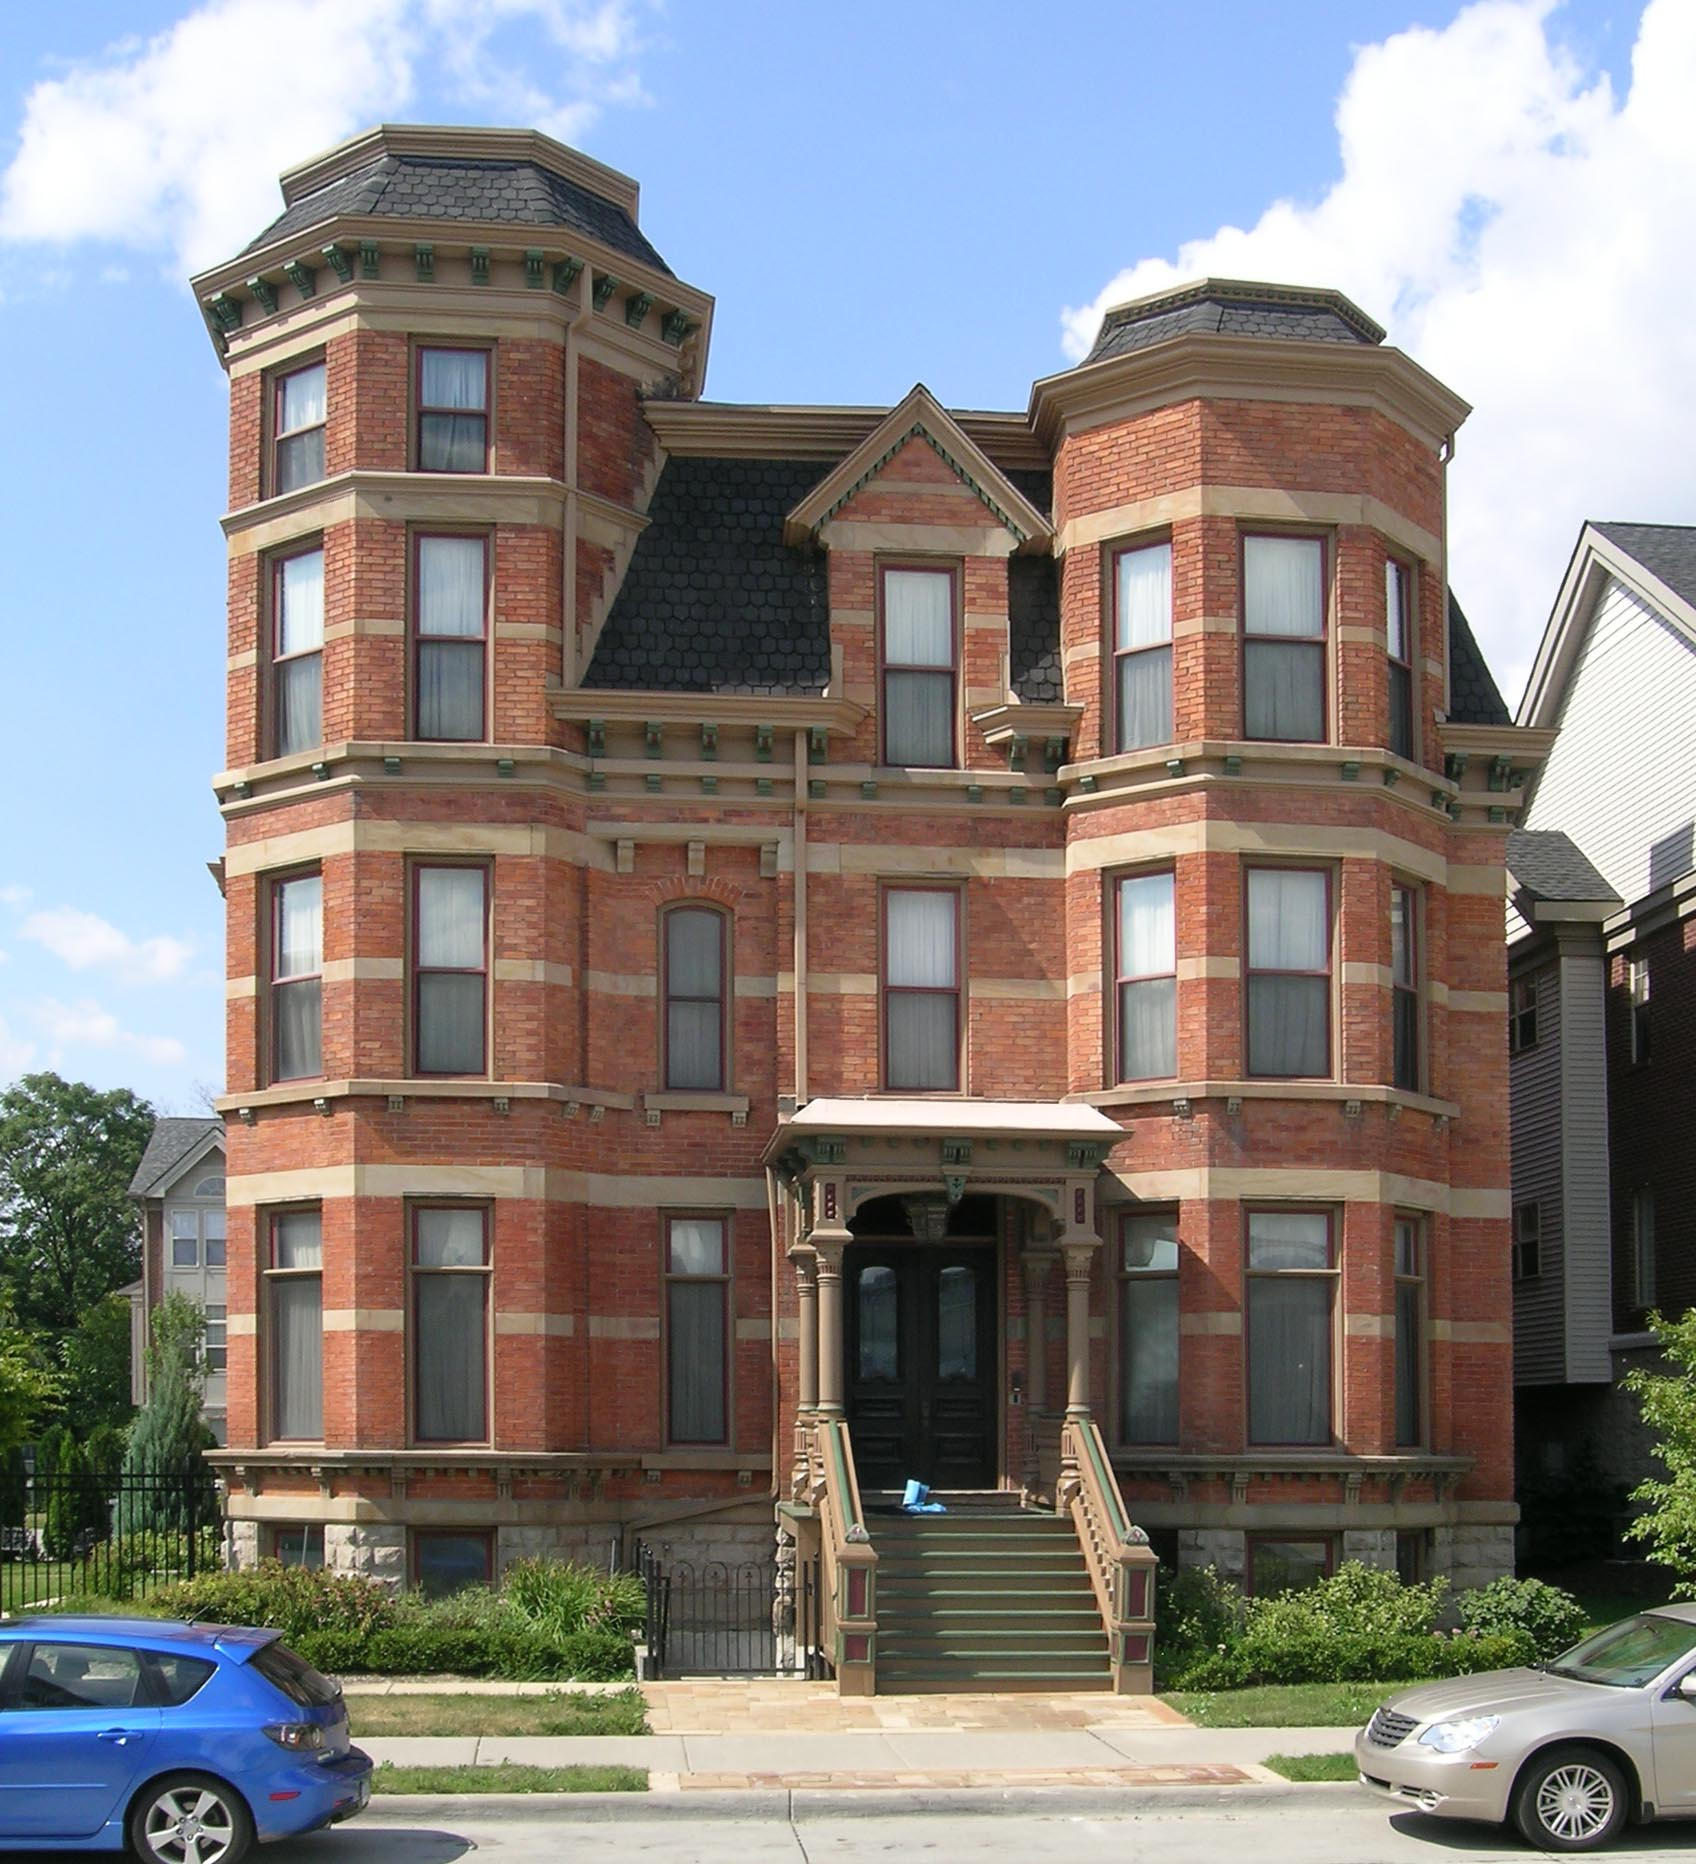 File:John Harvey House Detroit.jpg - Wikimedia Commons